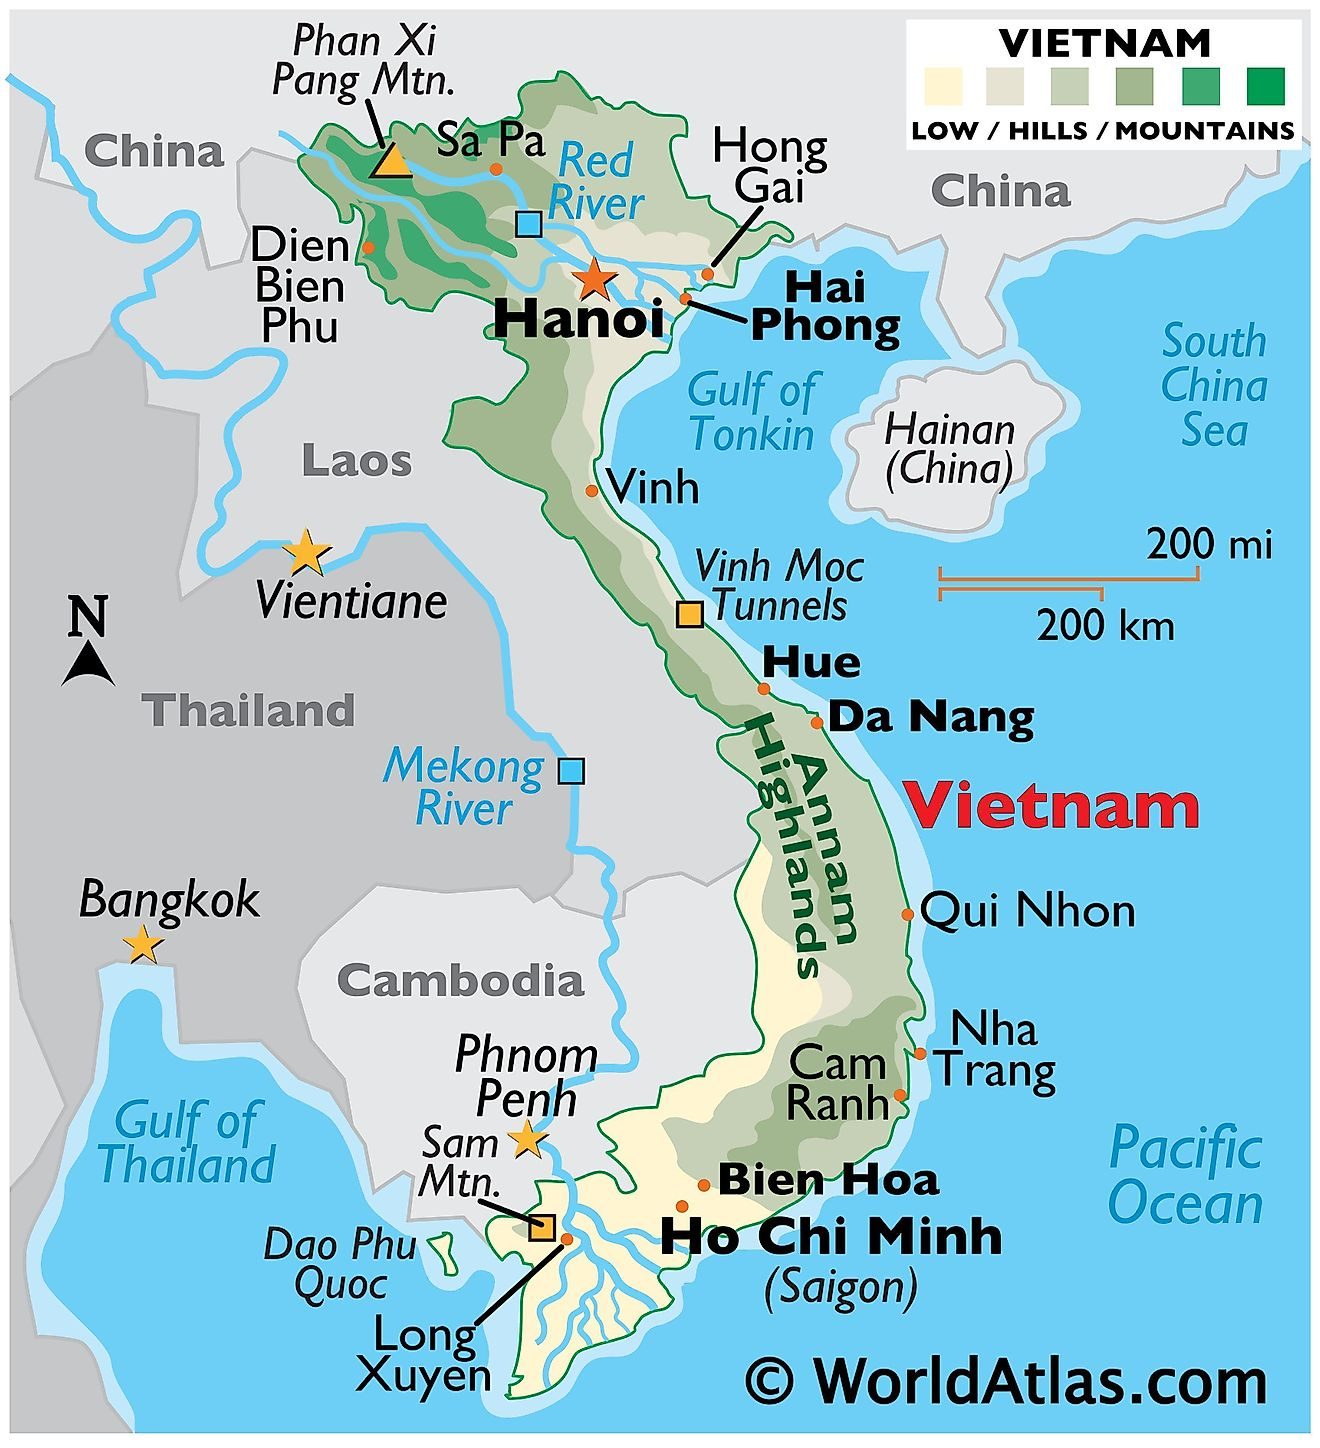 Physical Map of Vietnam with state boundaries, major rivers, highland areas, highest peak, important cities, and more.